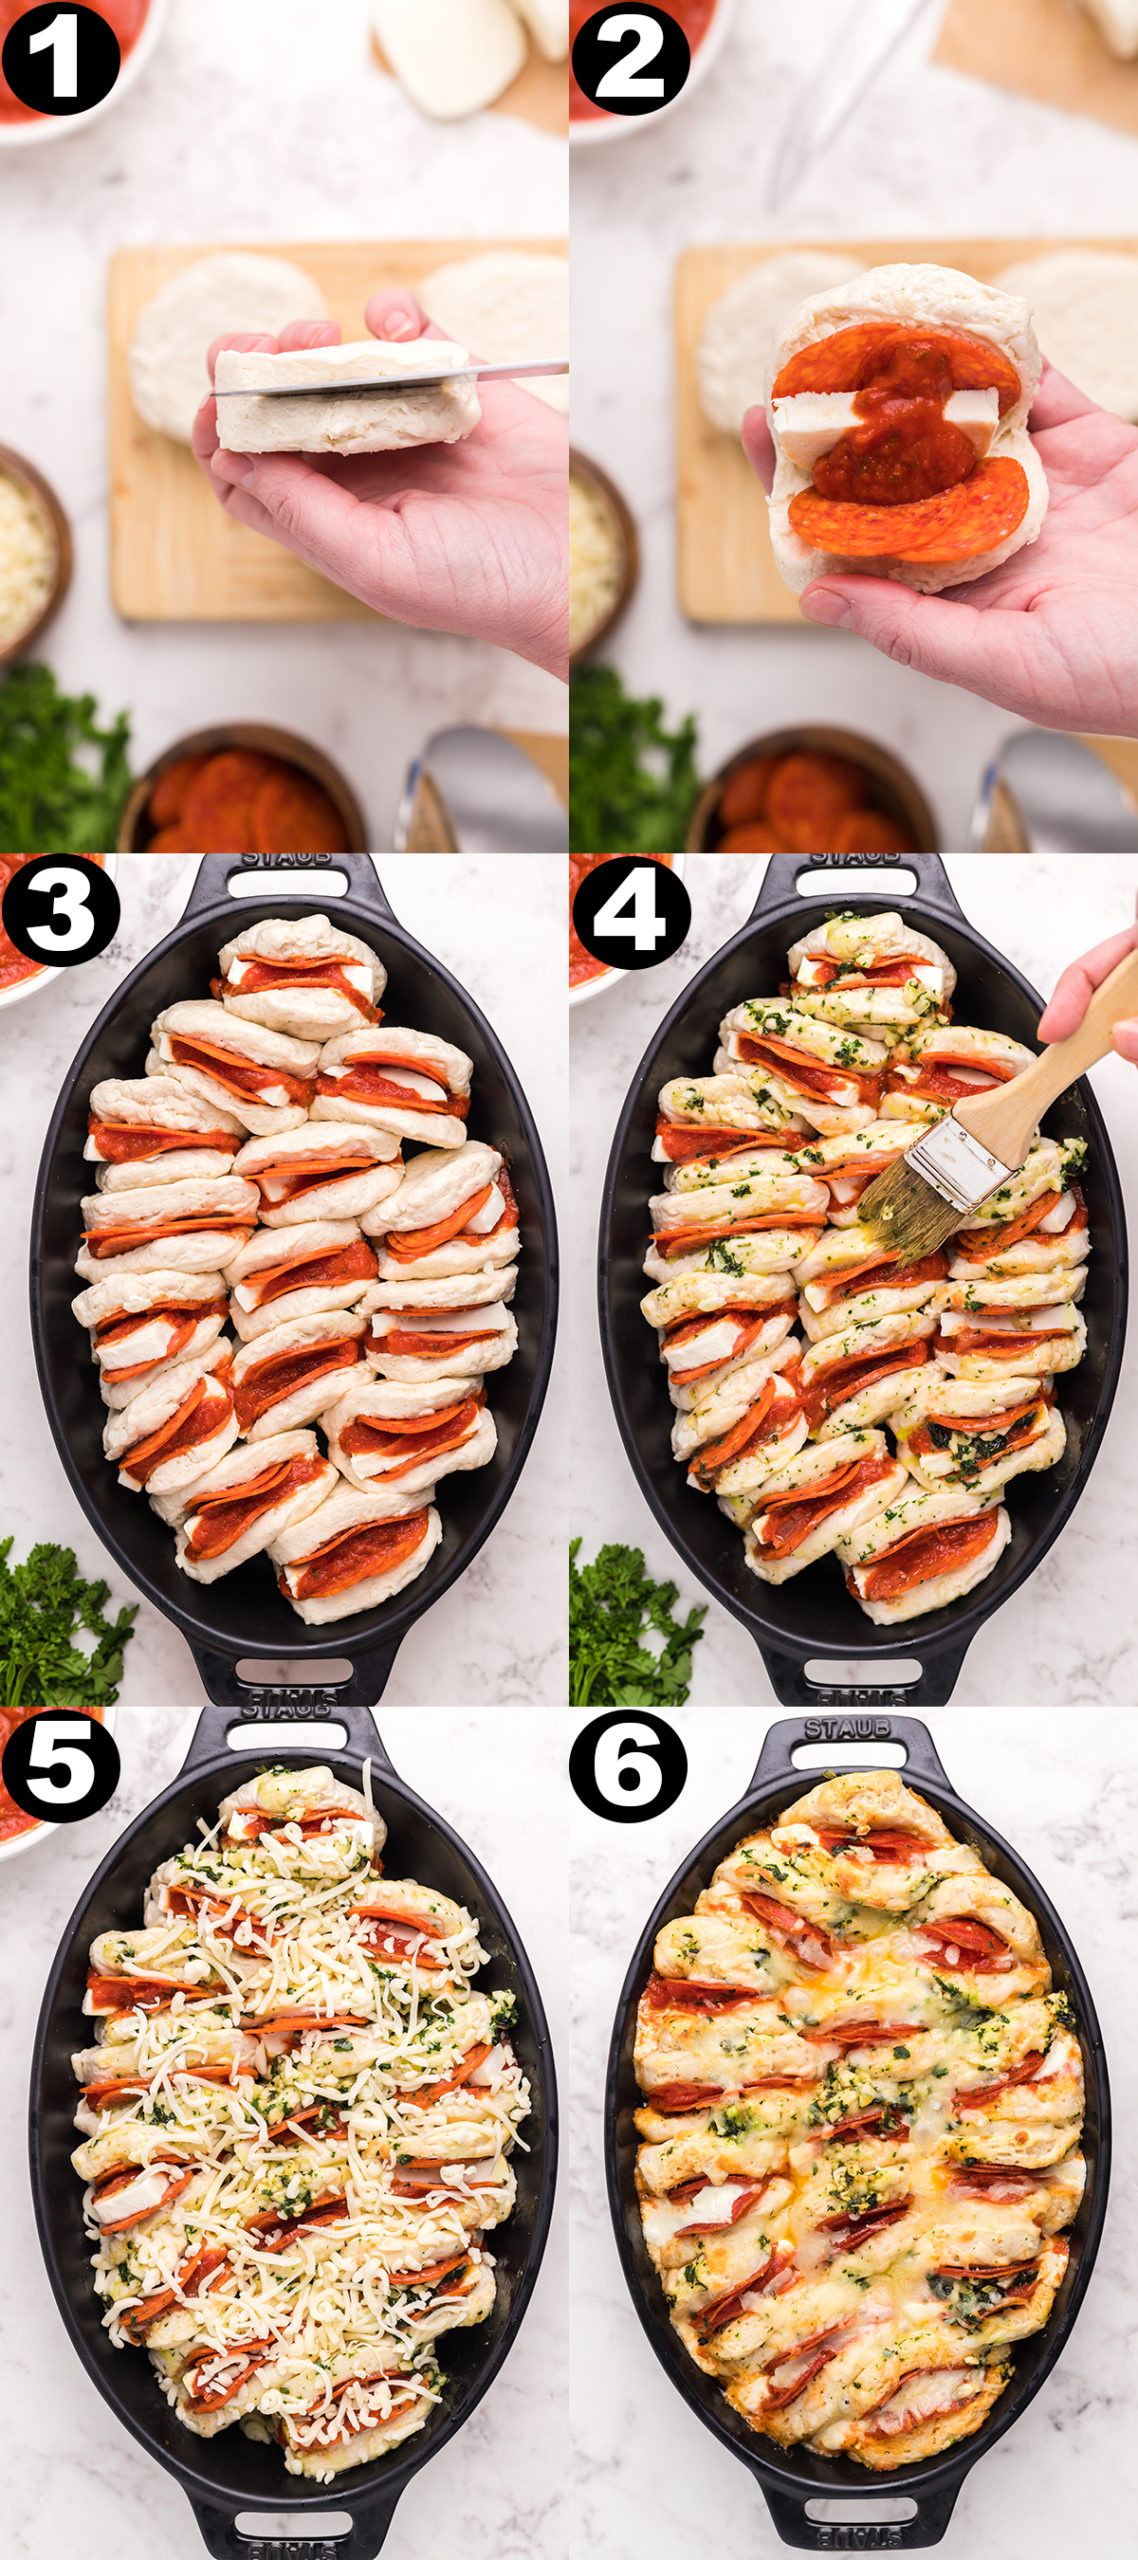 Collage showing the steps to making pizza biscuit casserole. Photo 1 - slicing open a raw canned biscuit, 2 - filling it with pepperoni, pizza sauce and cheese, 3 - arranging the biscuits in a casserole dish, 4 - brushing on garlic butter, 5 - adding shredded mozzarella to the top, 6 - the casserole after it has been baked.